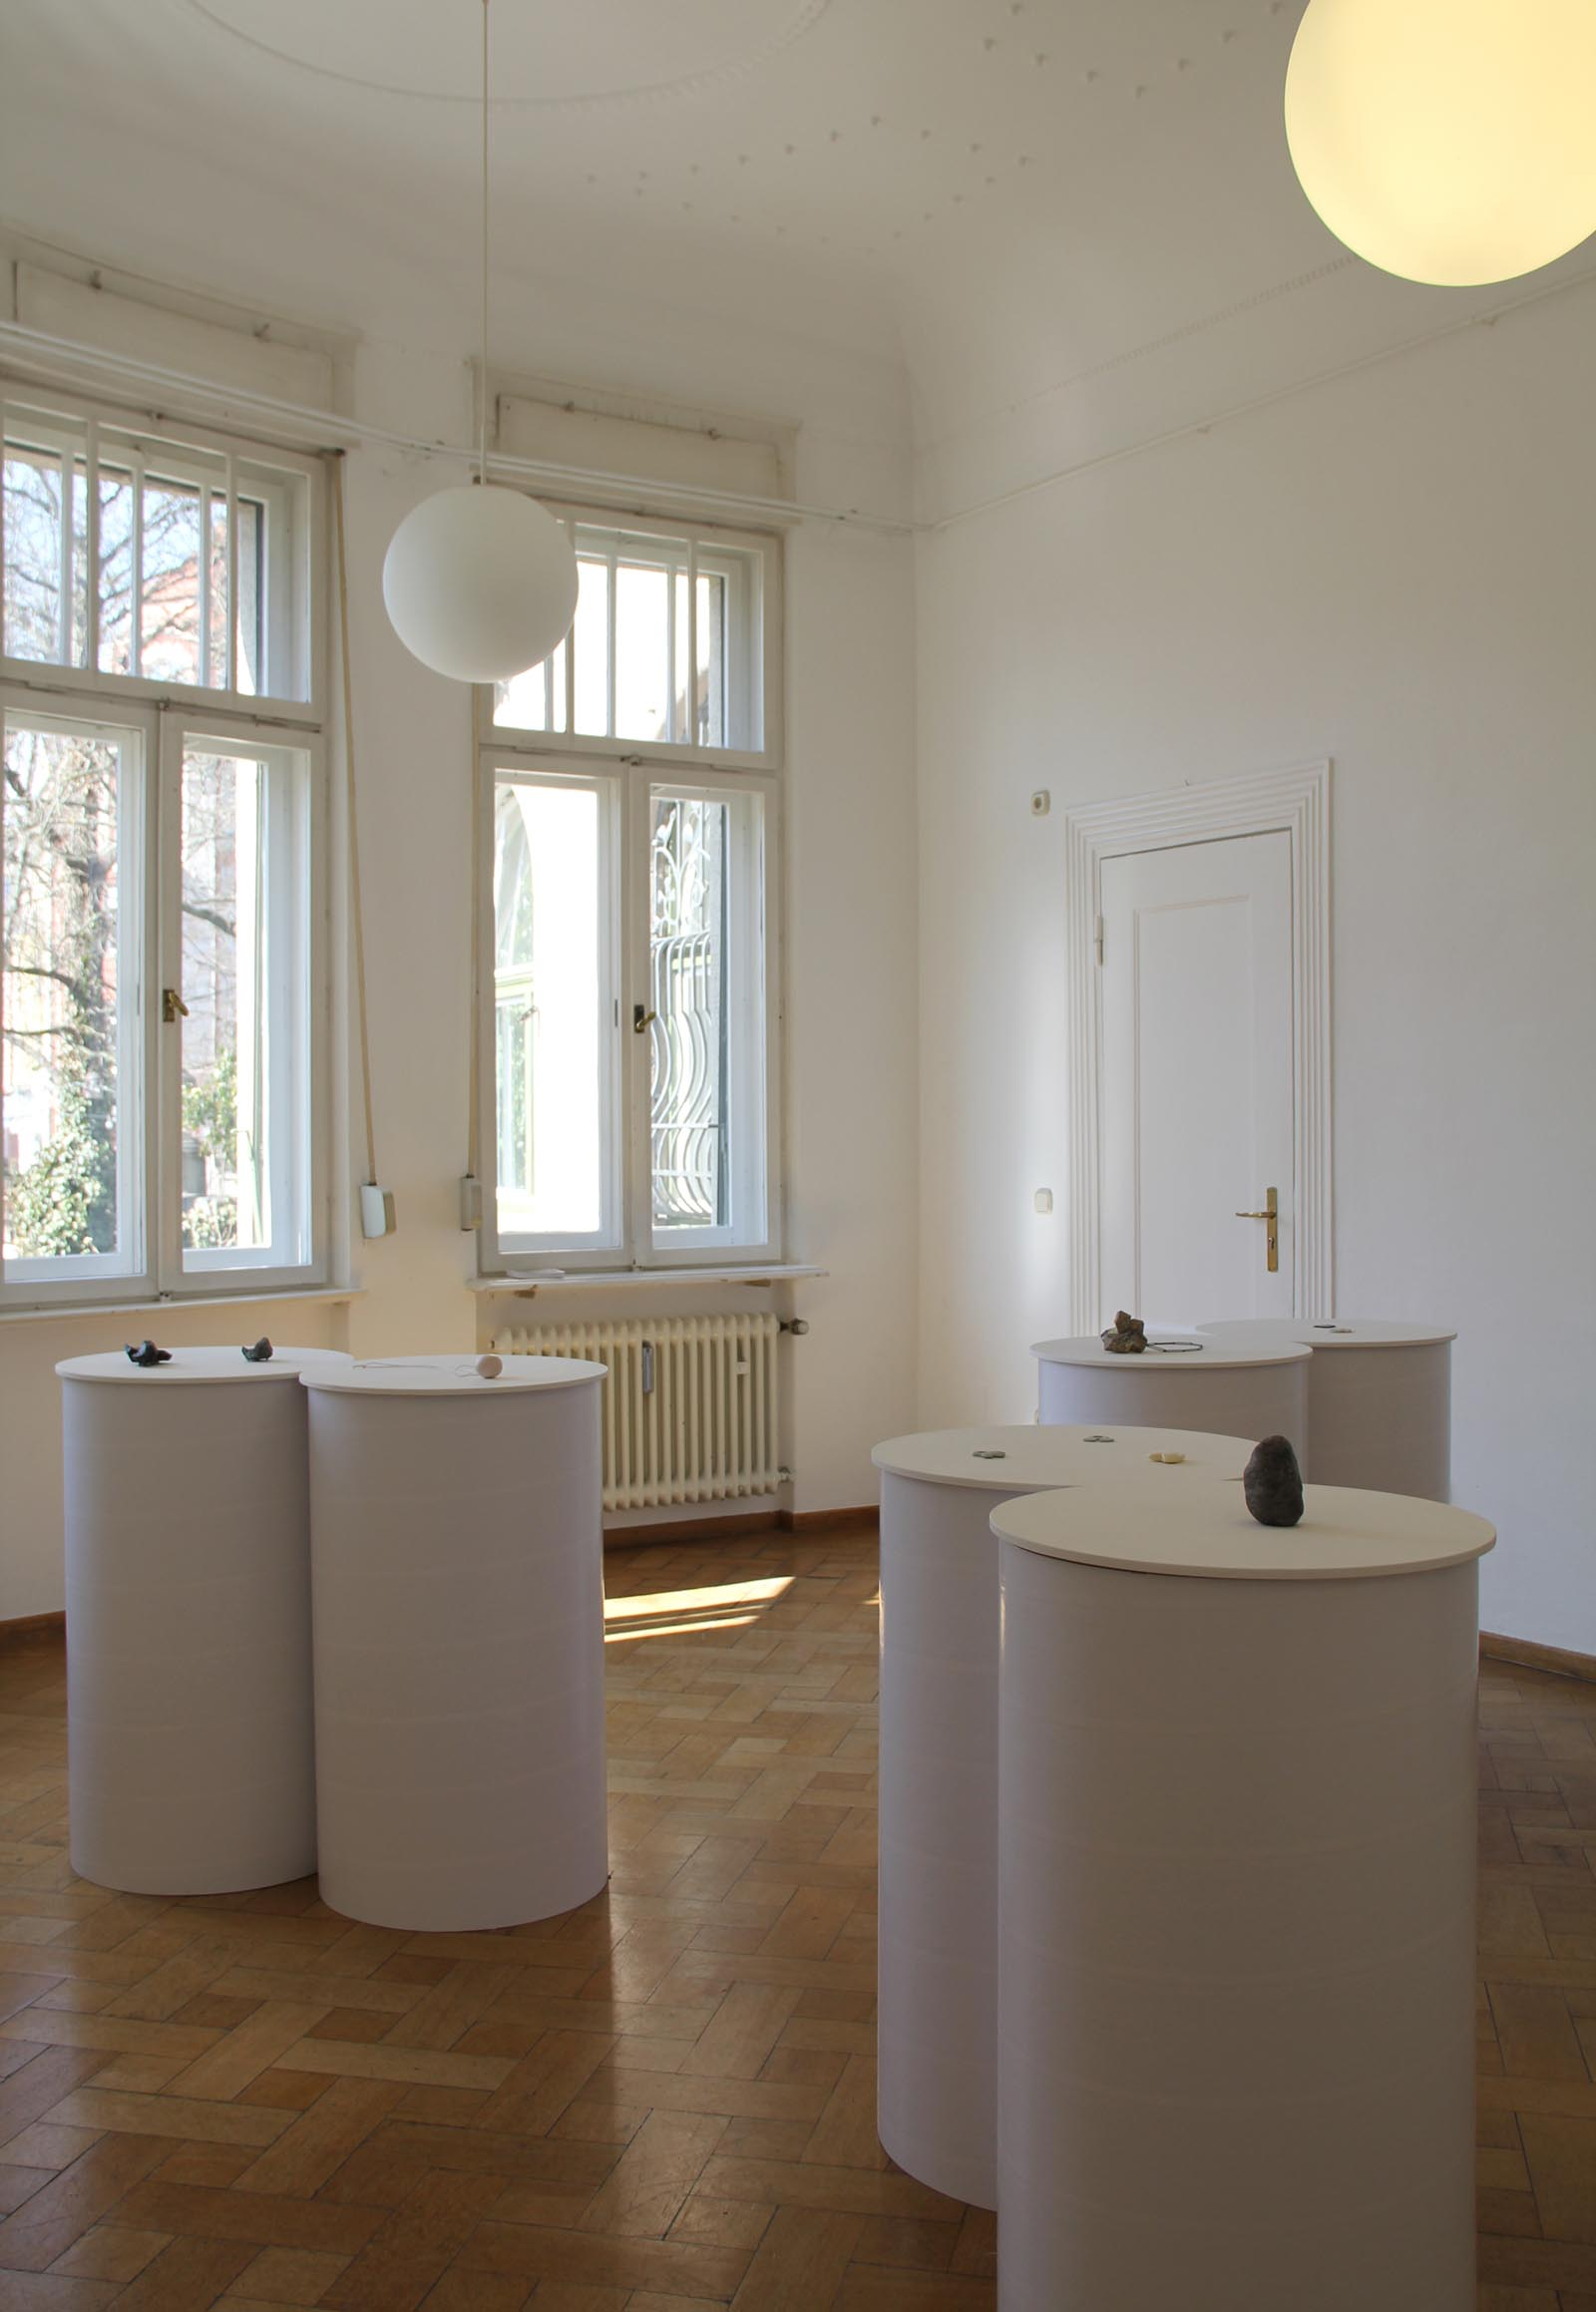 """A Flock of Pillars on Parade"" I A trio show with Emma Price, Barbara Schrobenhauser and Carina ShoshtaryI 2012 I Seidlvilla, Munich, Germany I Photo: Carina Shoshtary"